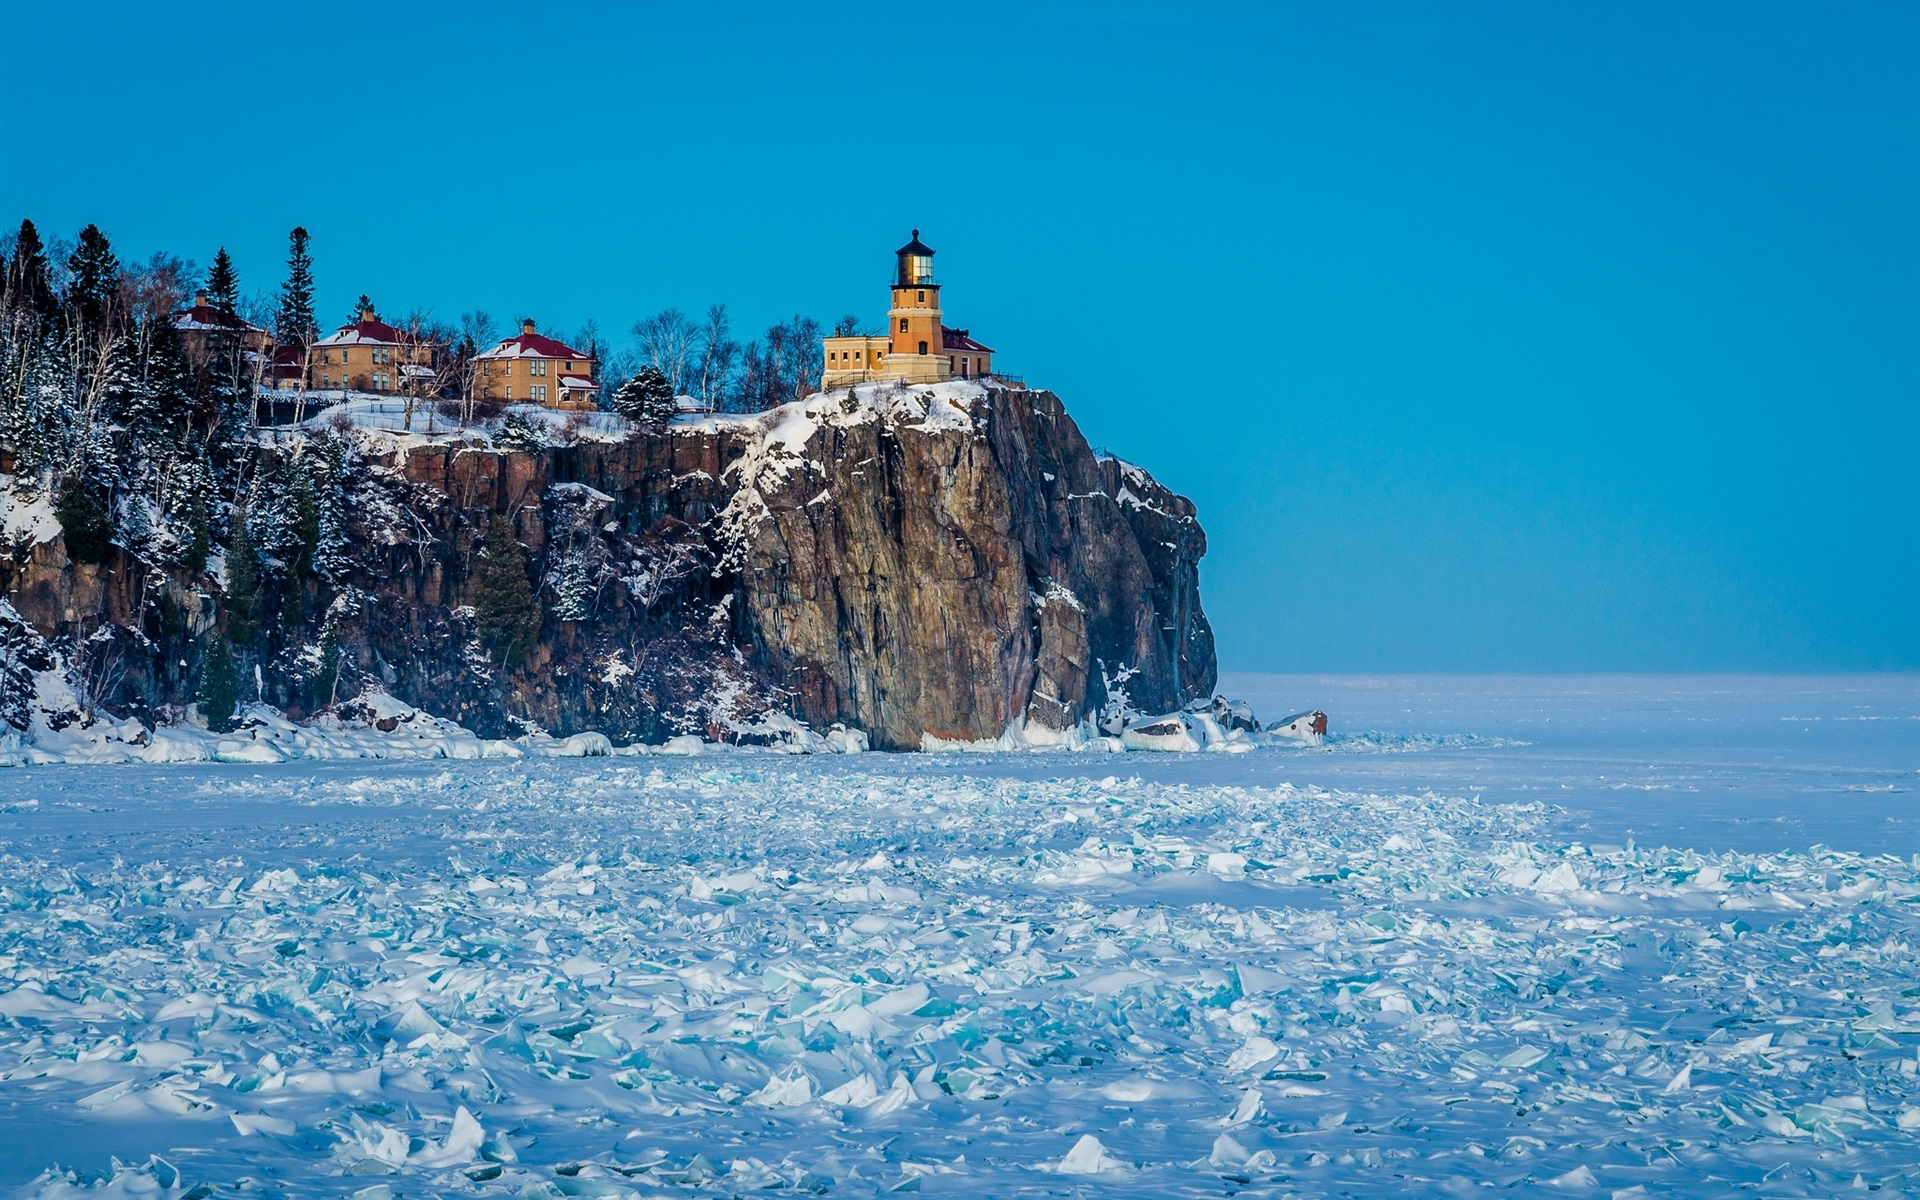 Wallpaper Winter Snow Lighthouse Frozen 1920x1200 HD Picture Image